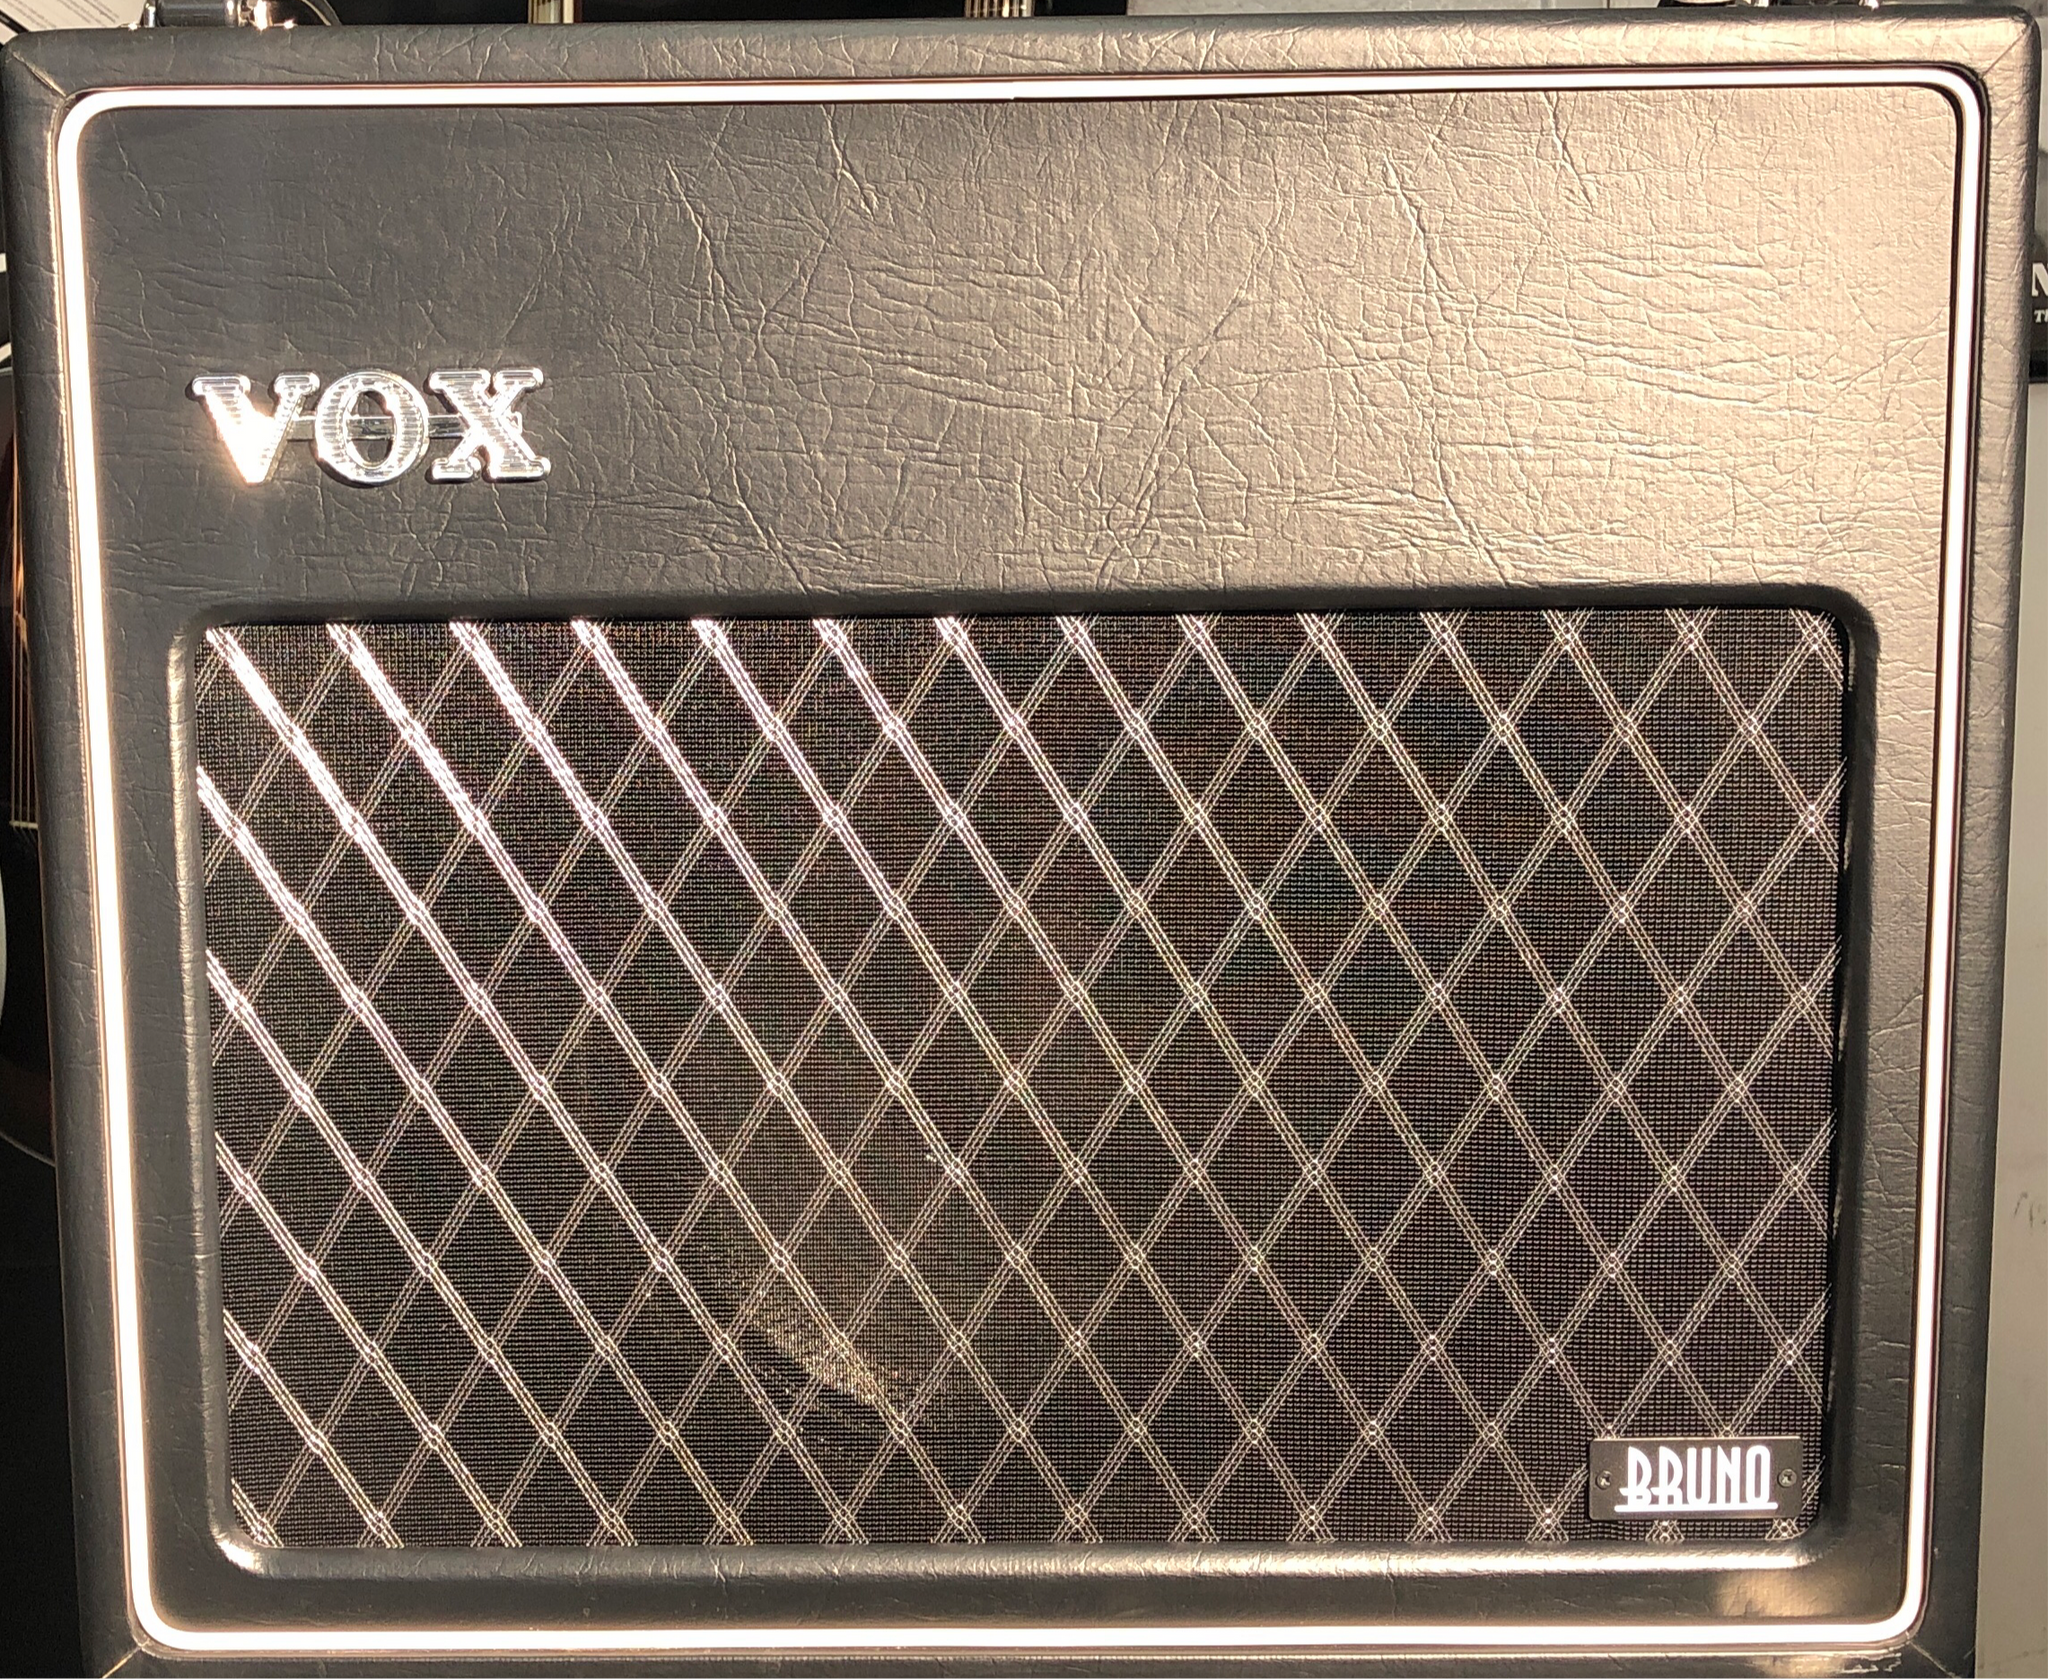 Vox Tony Bruno TB35C1 35W 1x12 Tube Guitar Combo Amp (Floor Model)